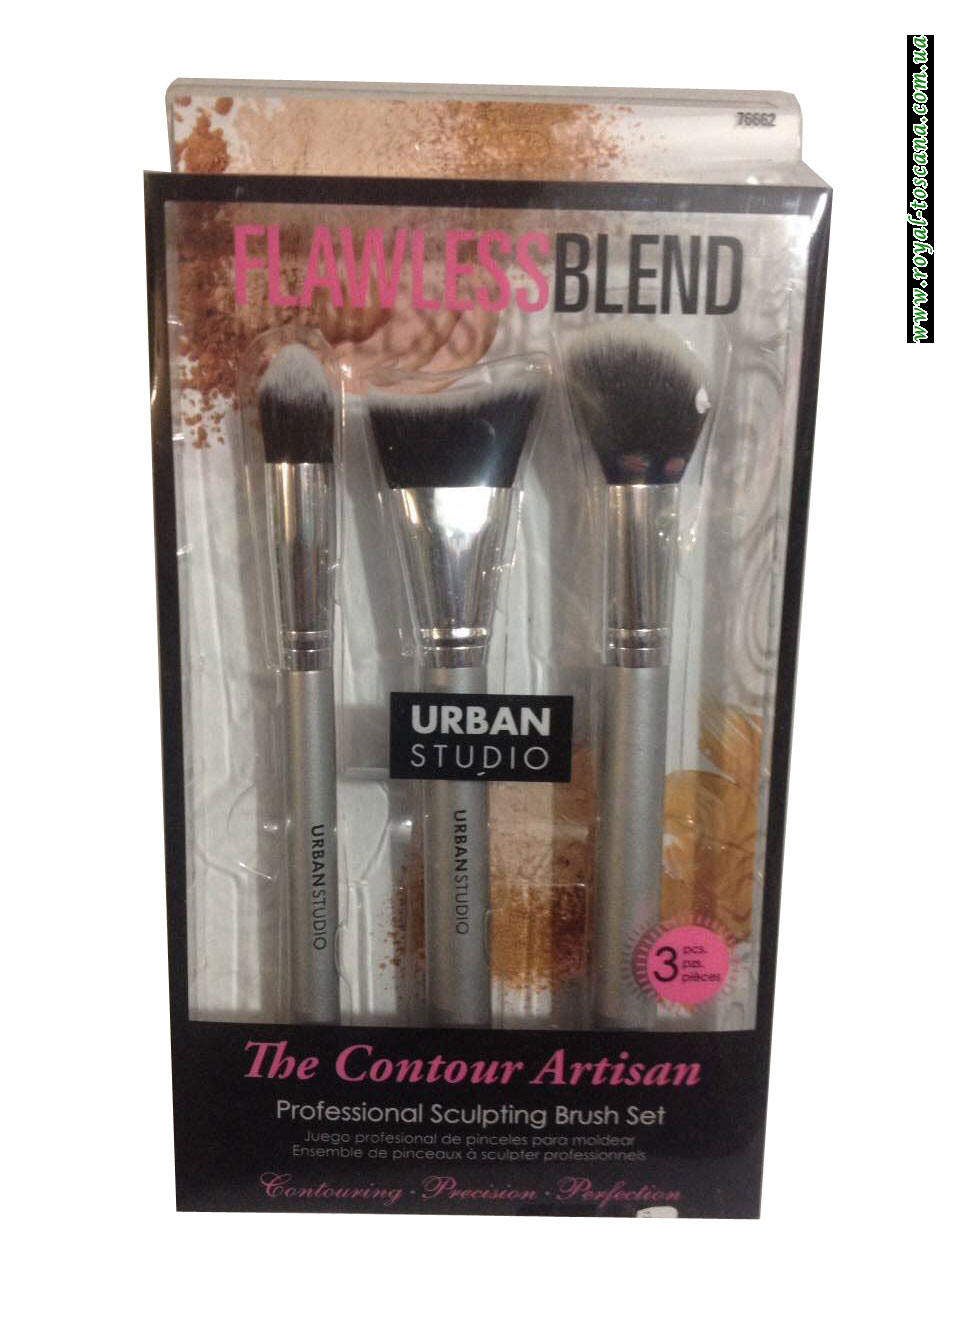 Набор кистей для макияжа Urban Studio Flawless Blend The Contour Artisana